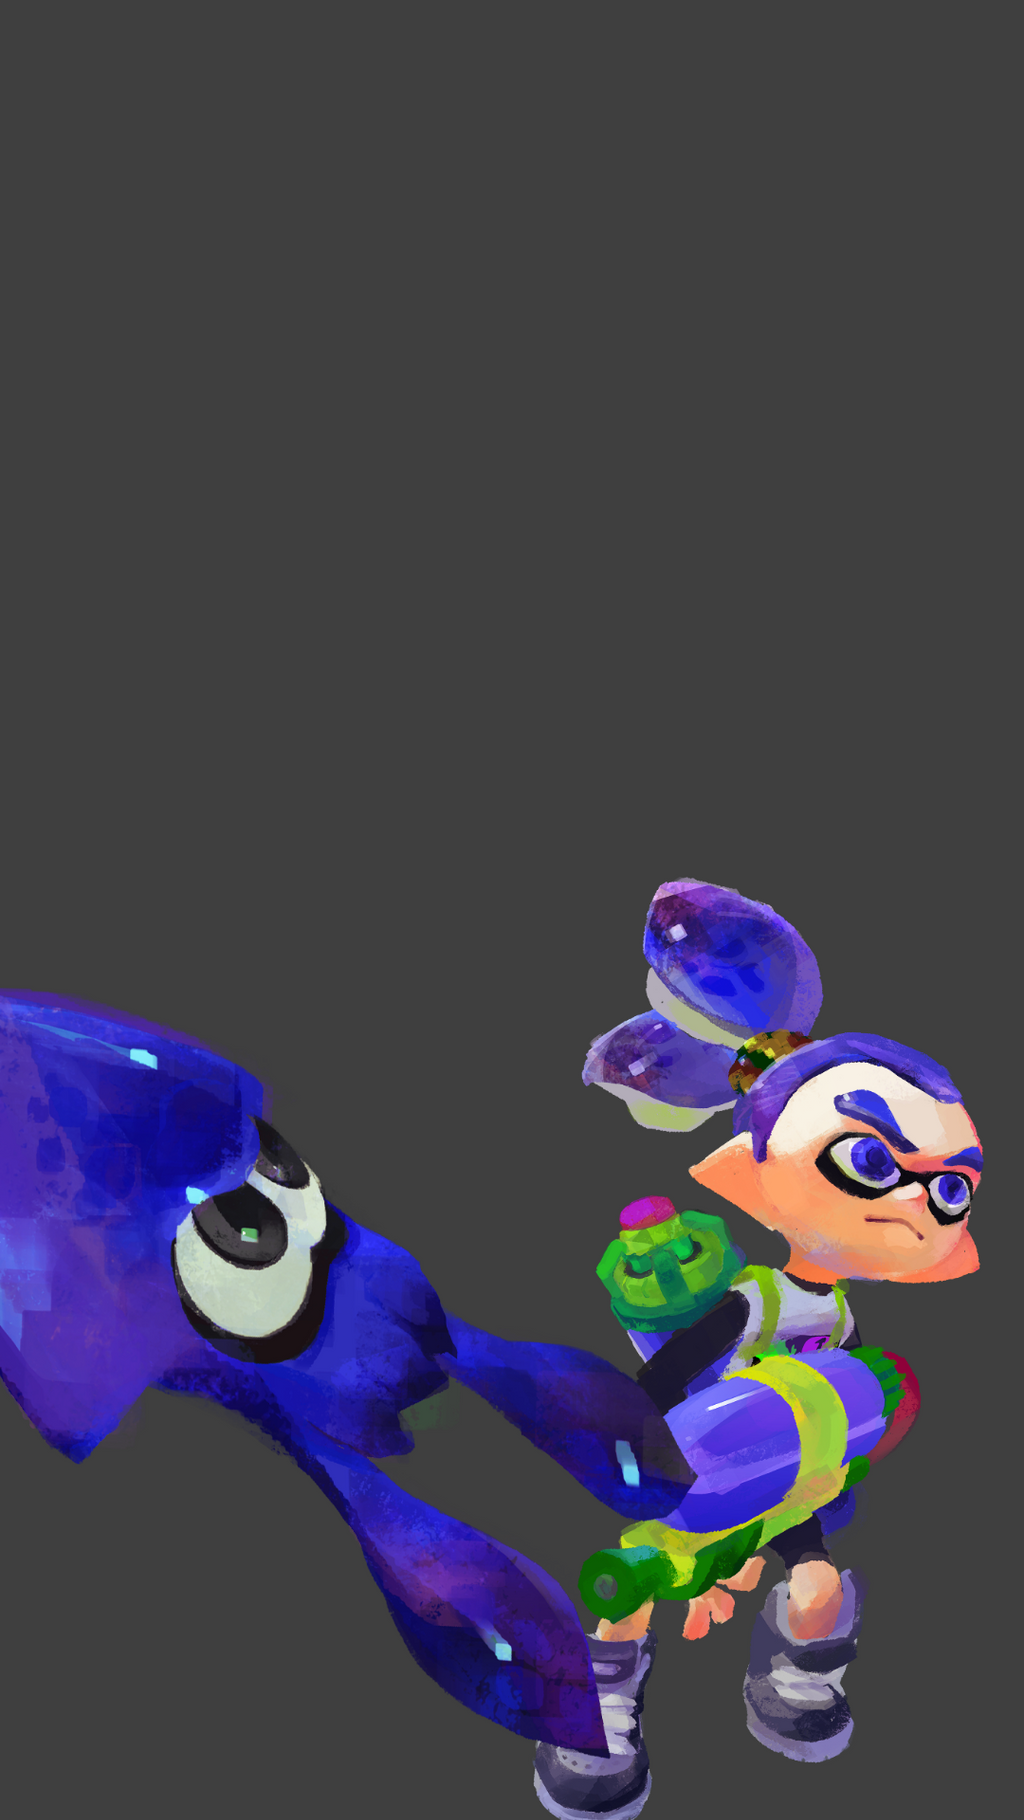 splatoon wallpaper by xxzicexx - photo #24